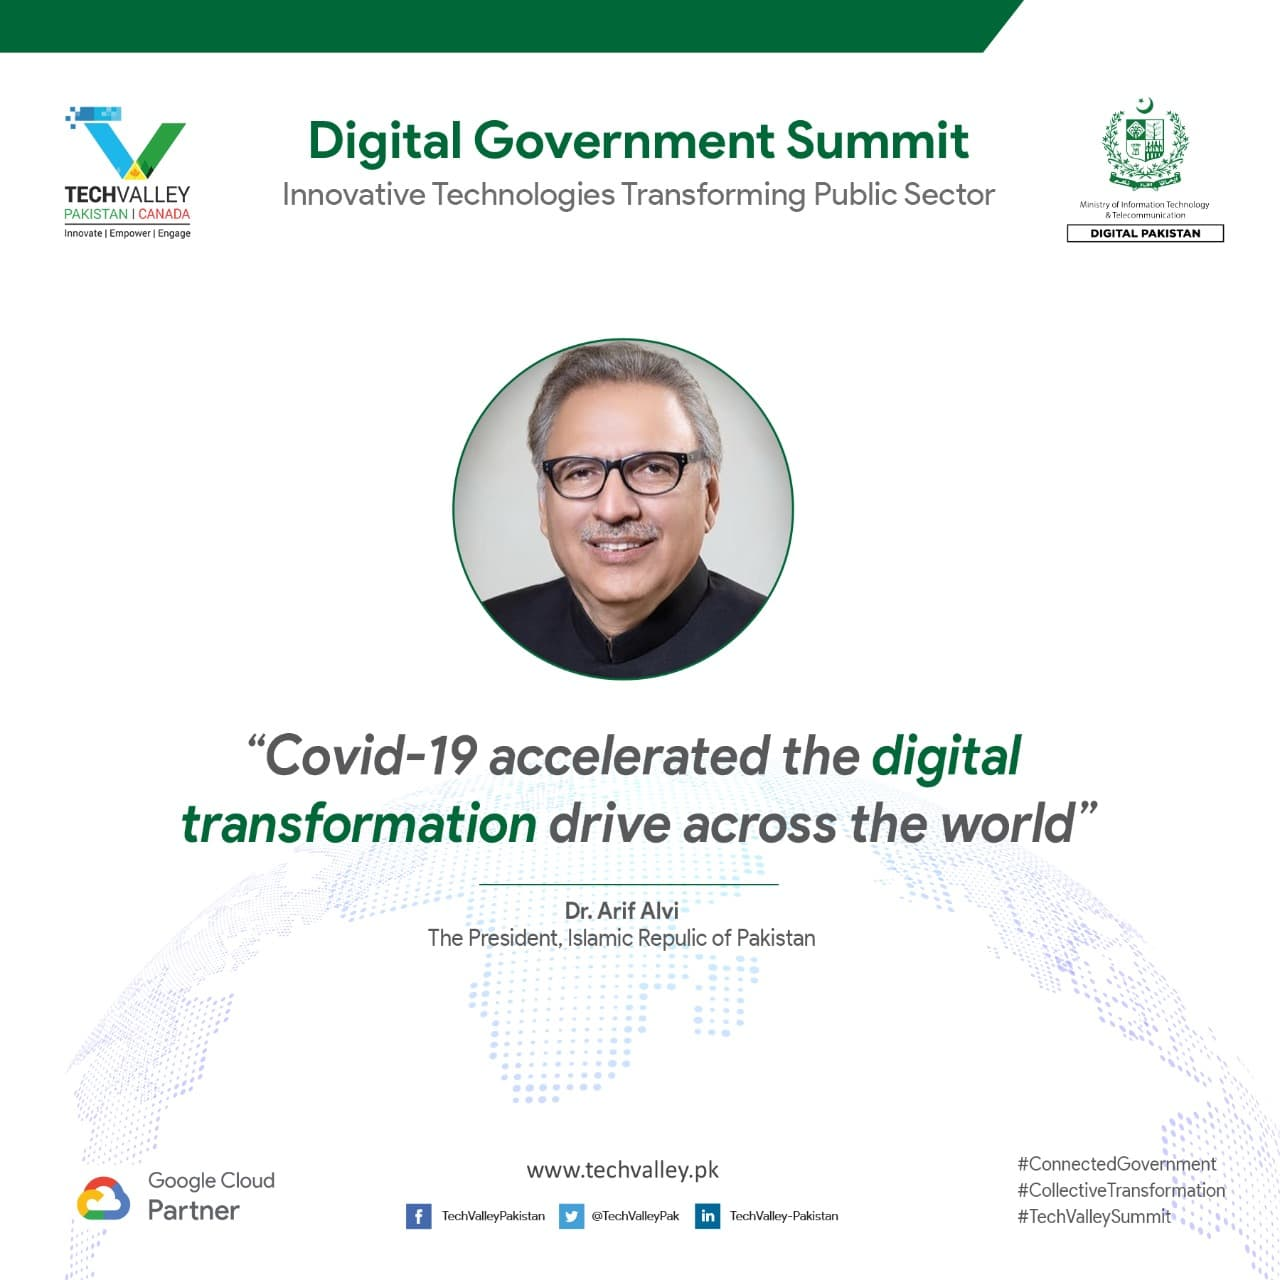 Digital Government Summit — Innovative Technologies Transforming Public Sector with Google